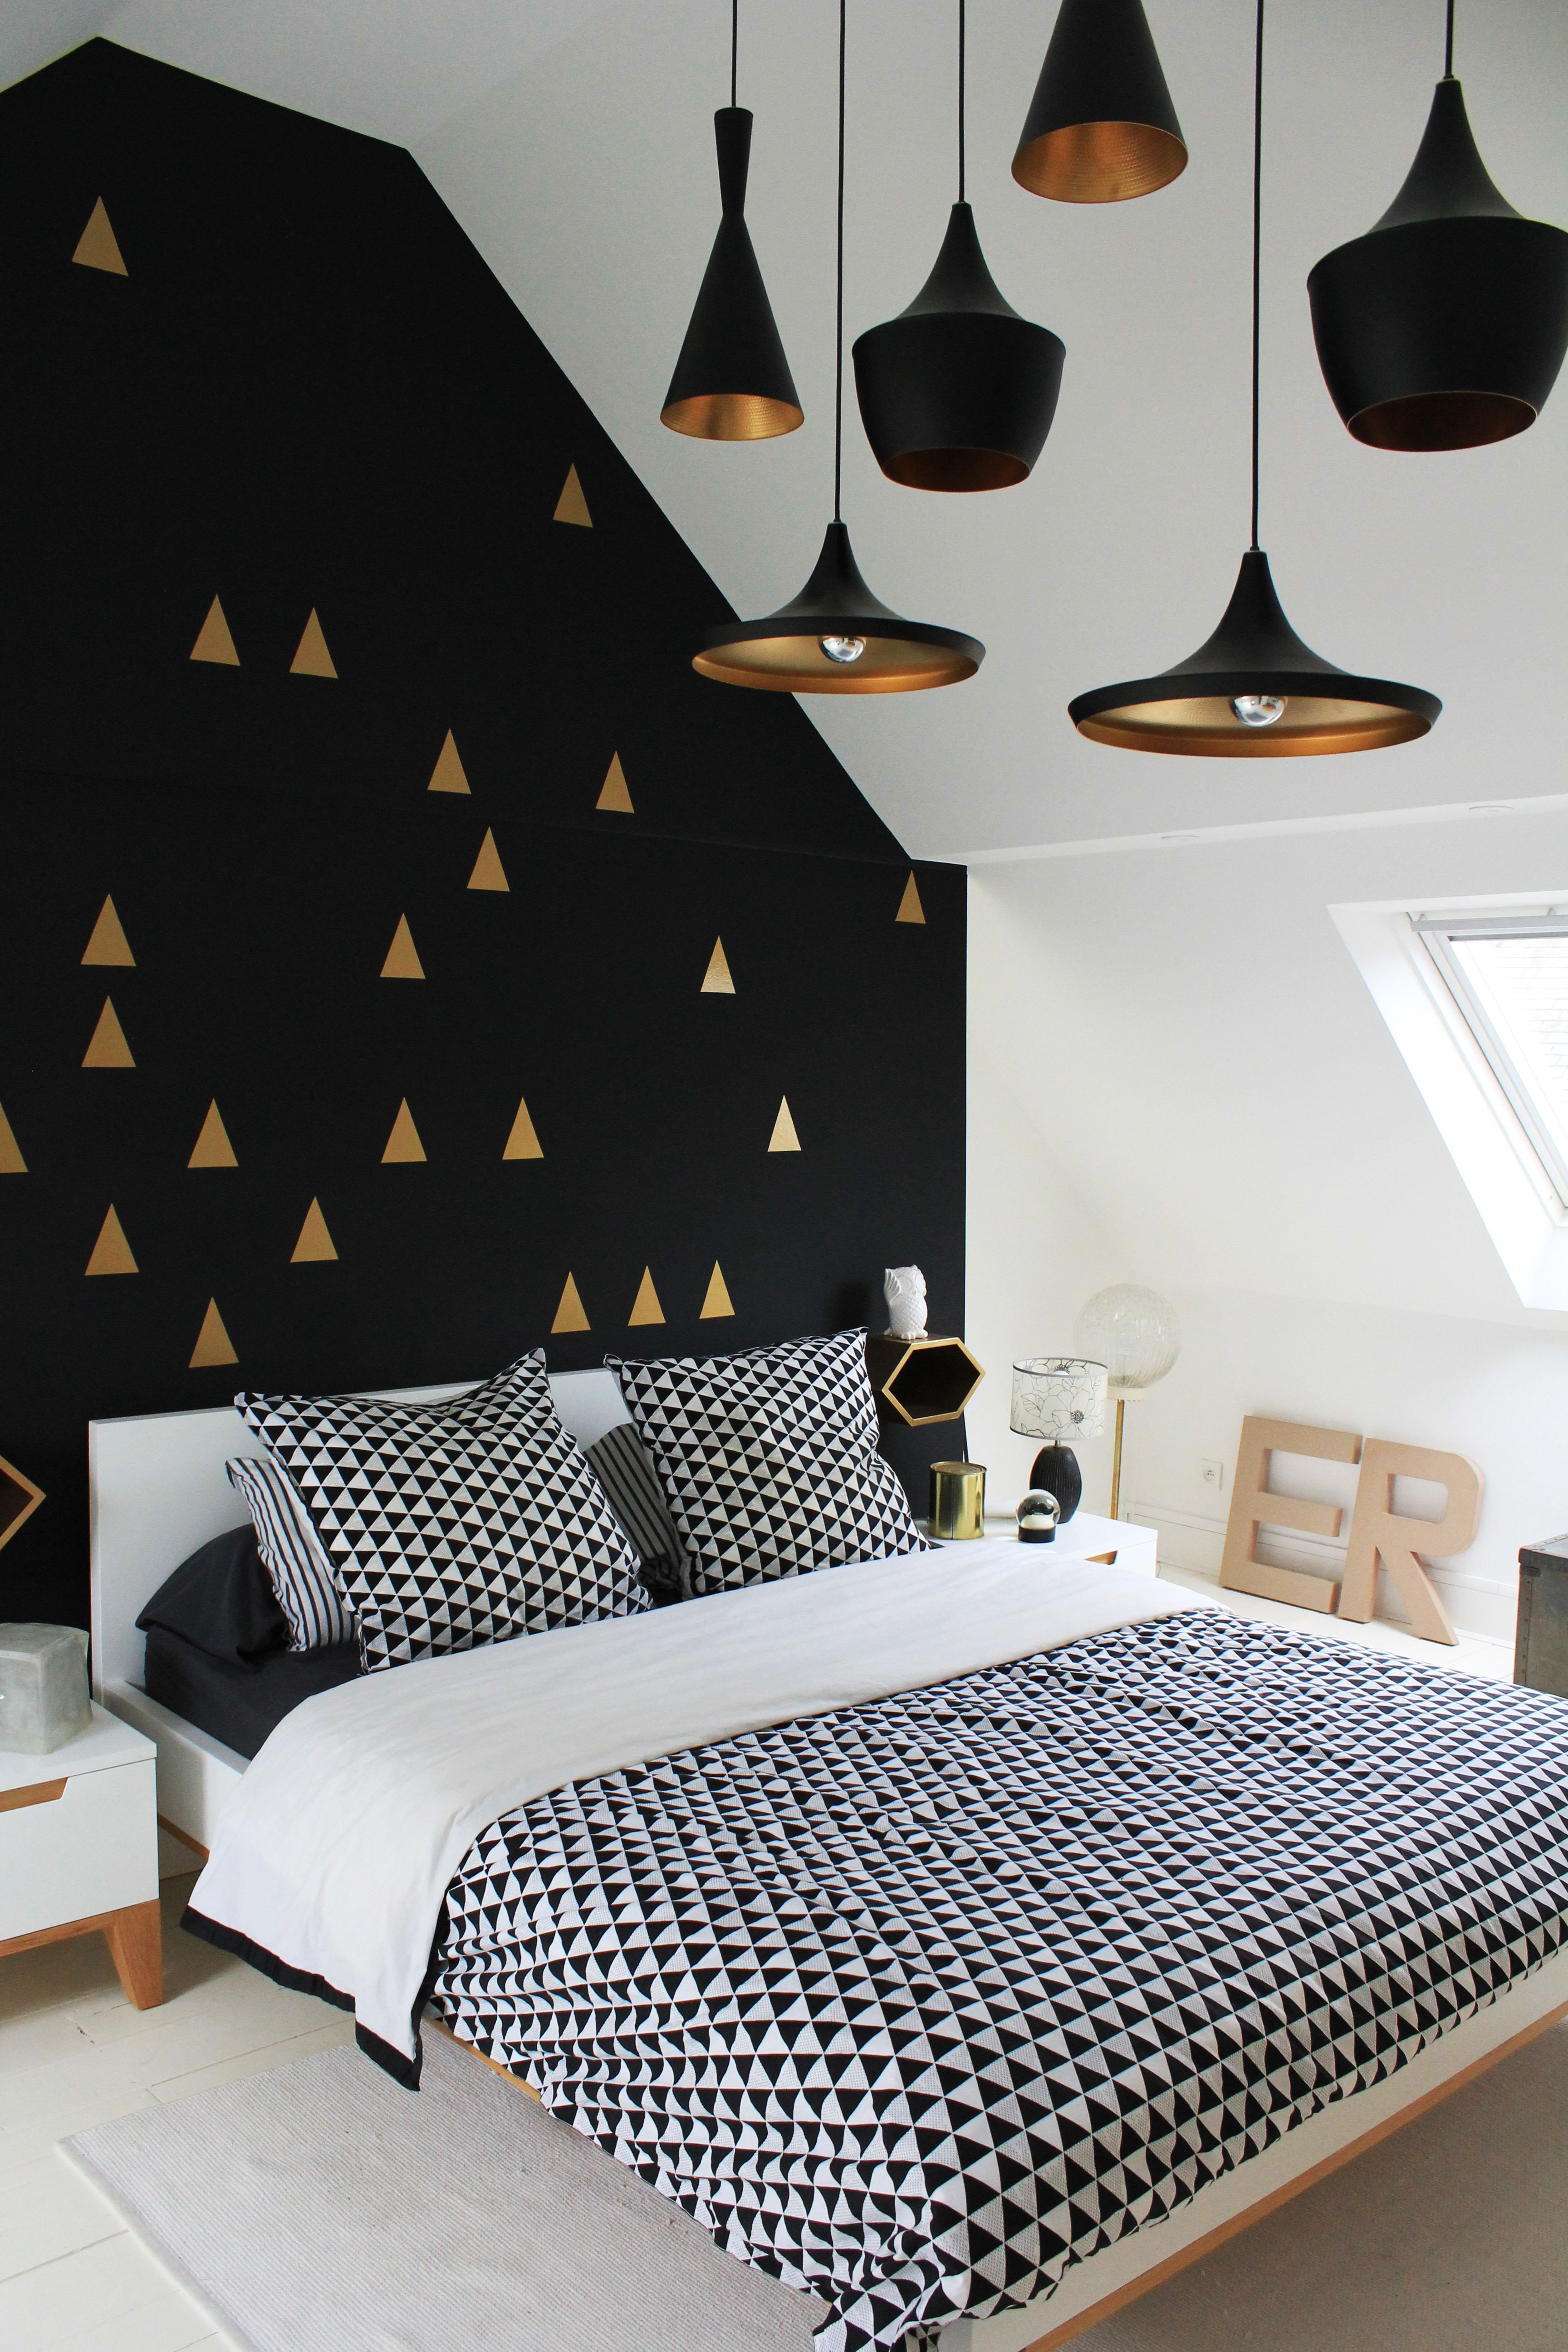 Wallpaper Borders for Bedroom Best Of Bedroom White Gold and Black Interior Love the Wall and